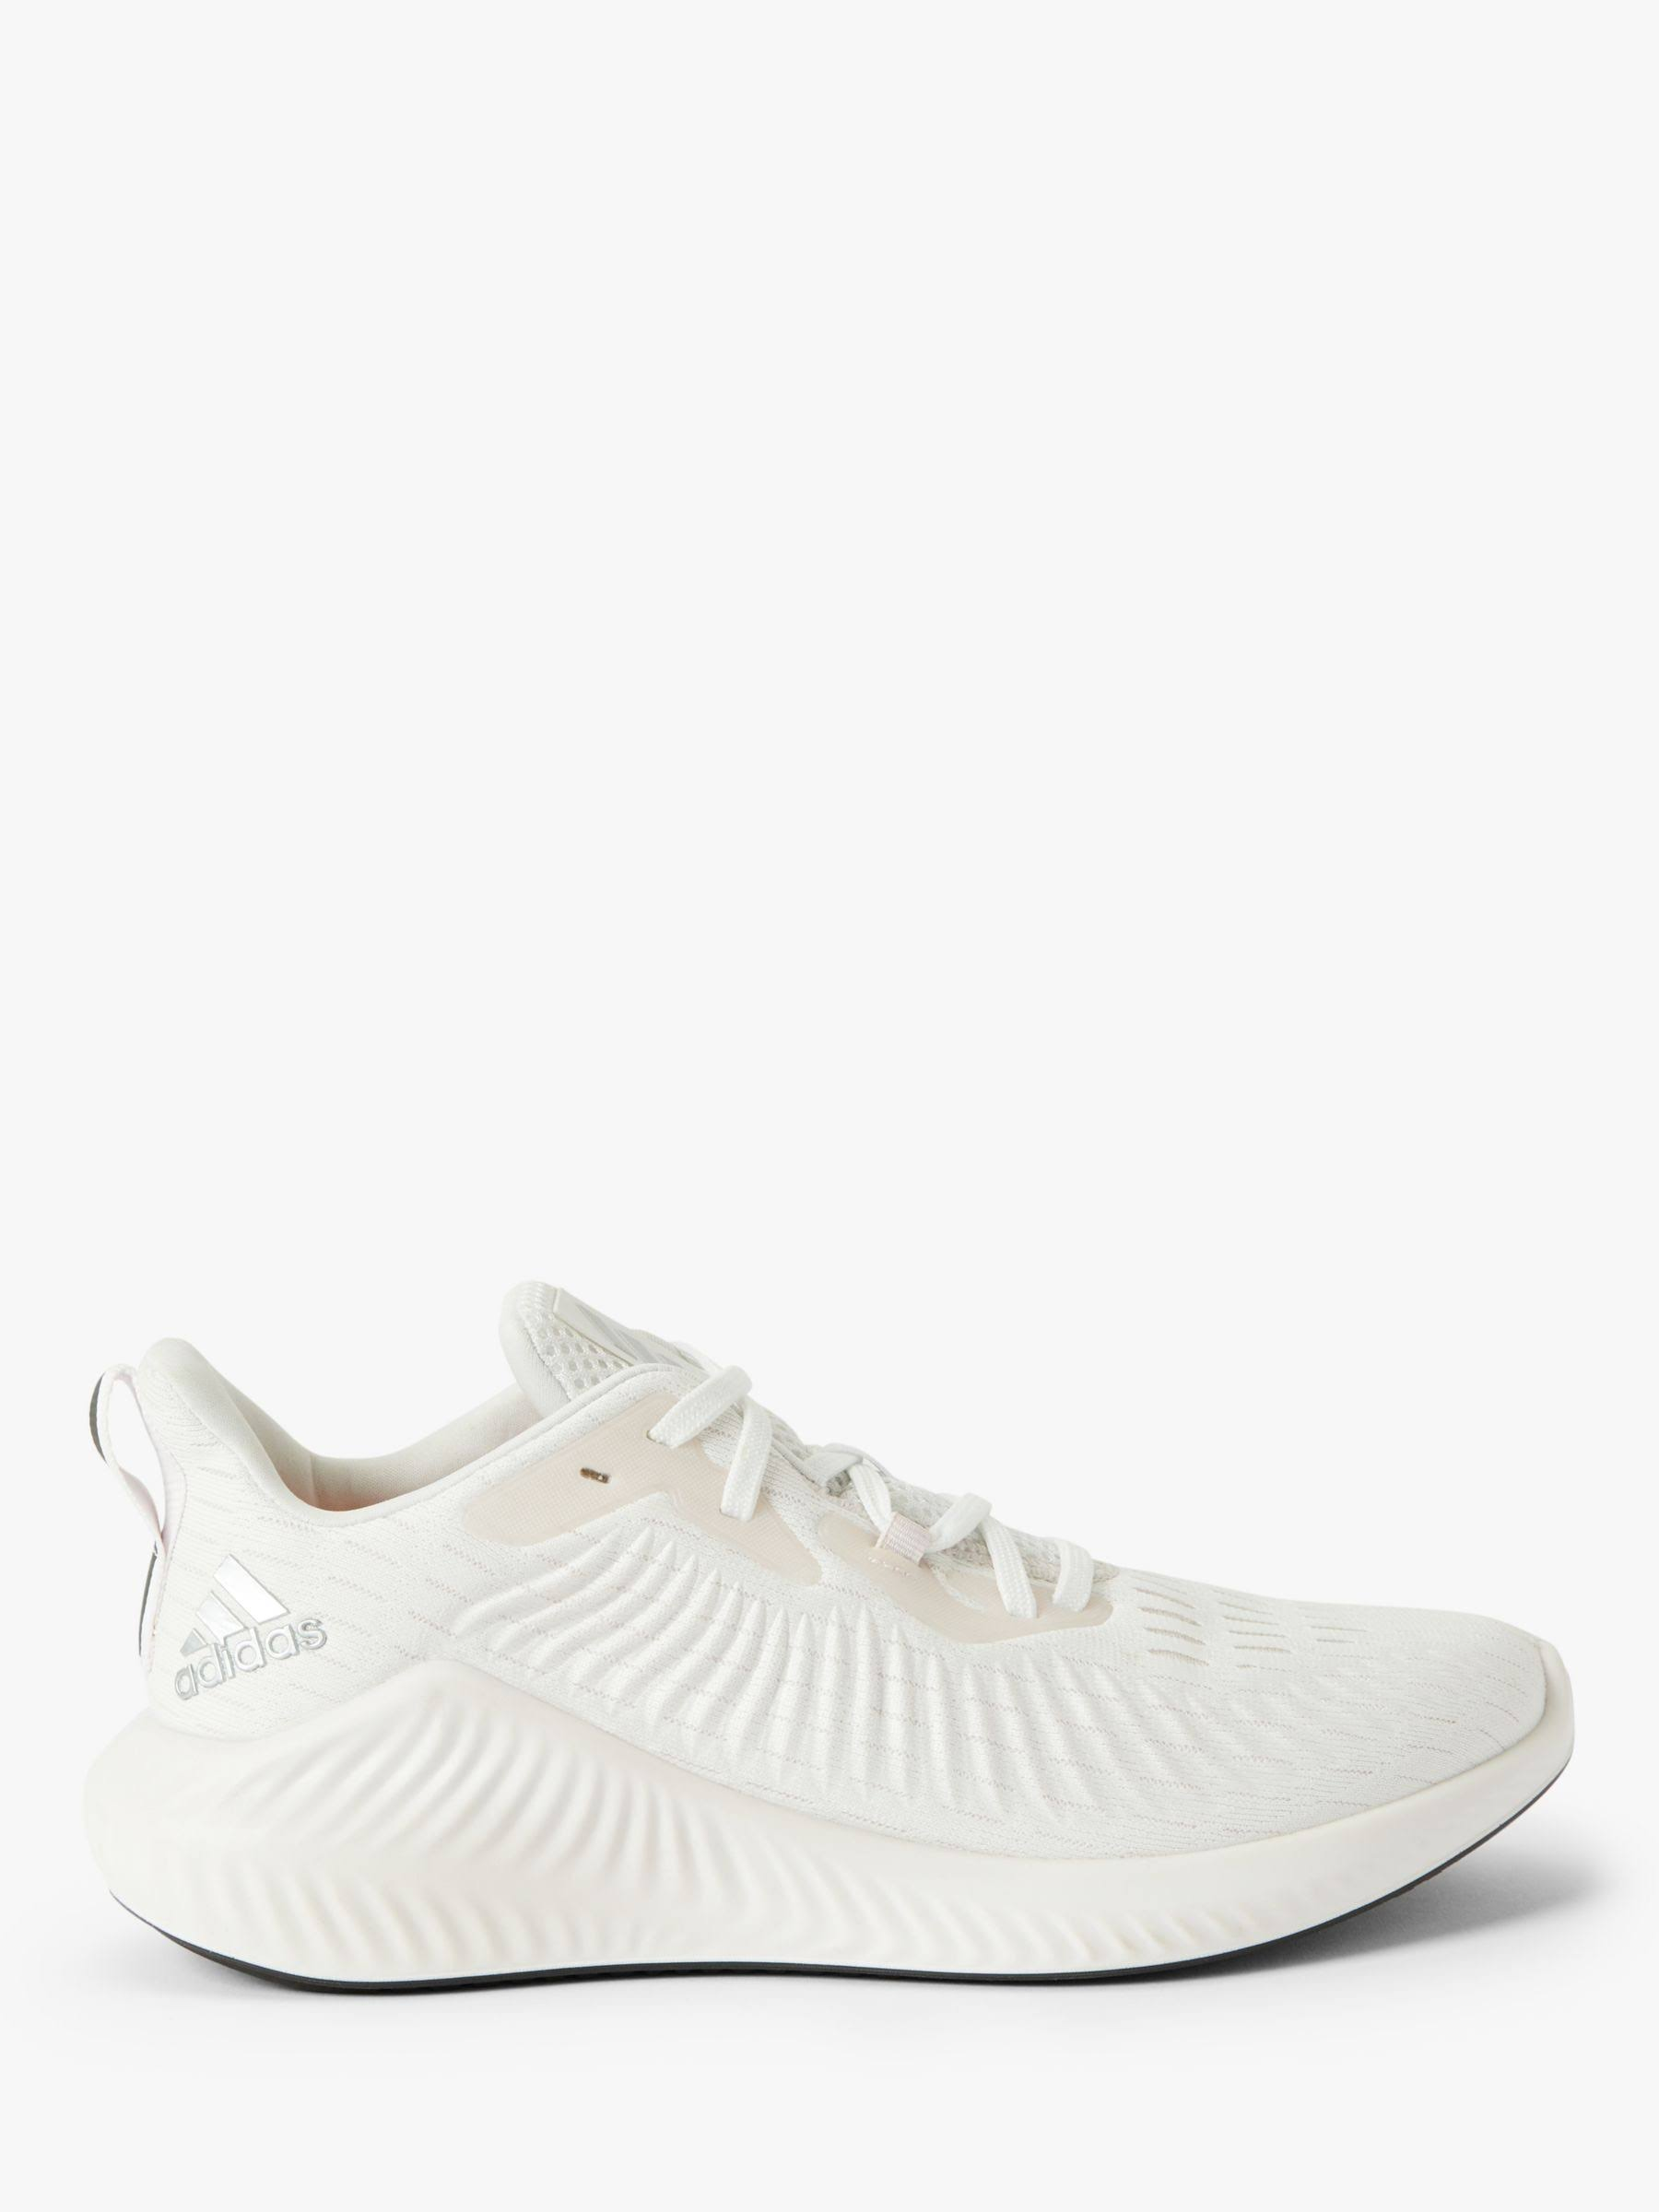 Adidas Alphabounce  W [G54122] Women Running Shoes White/Silver